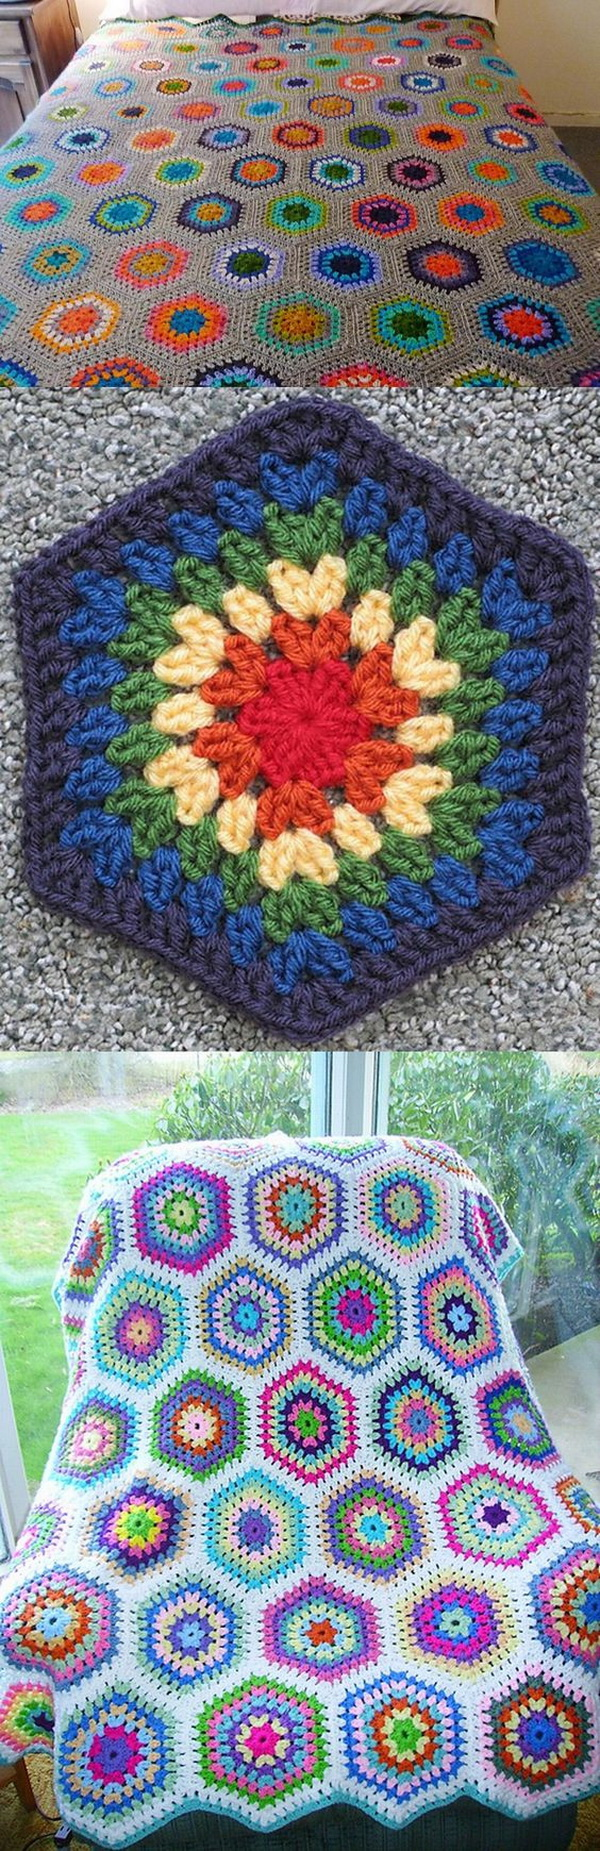 Quick And Easy Crochet Blanket Patterns For Beginners: Ruby Hexagon Blanket.